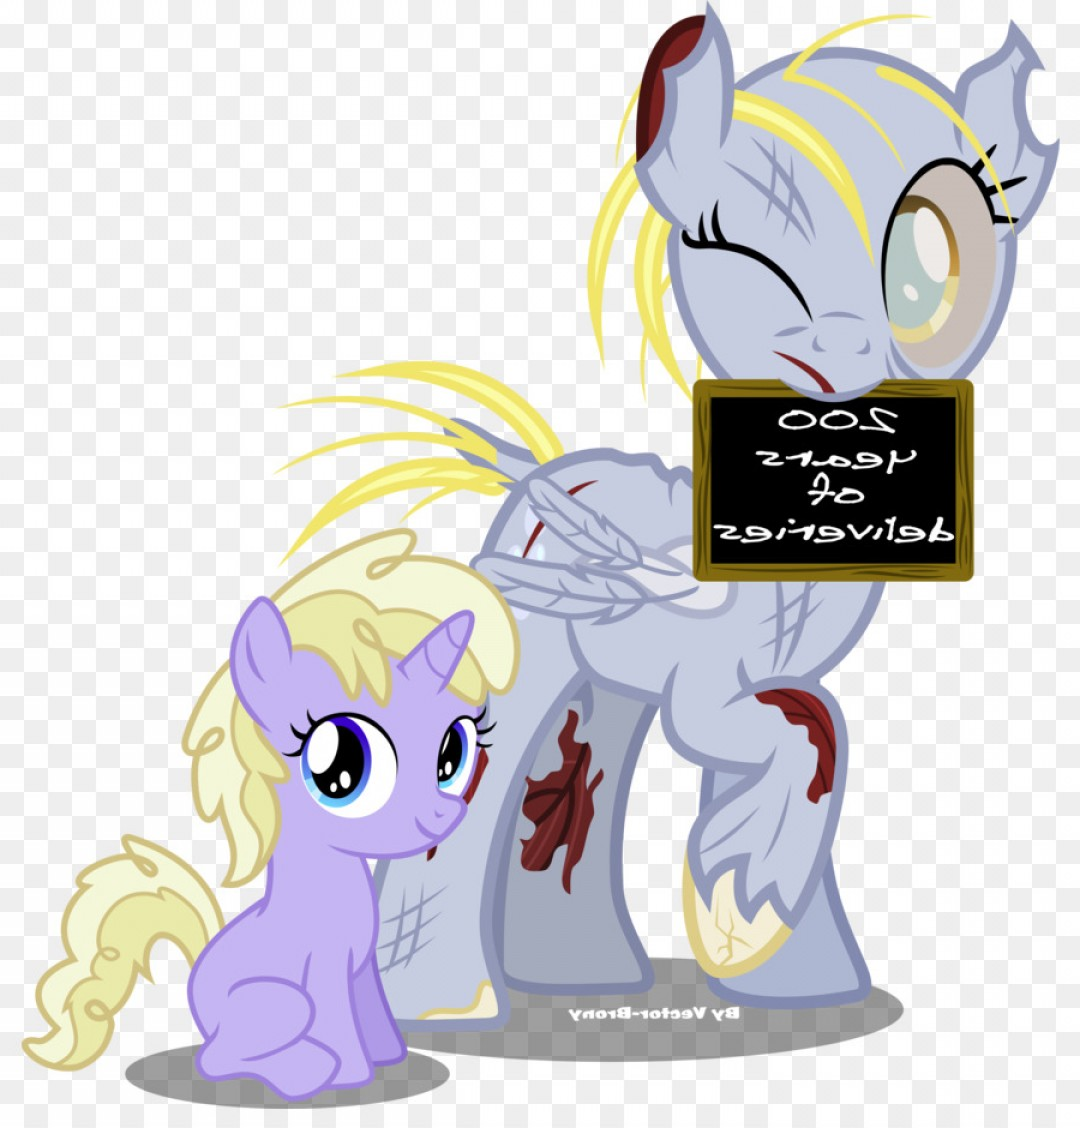 Derpy Hooves Vector: Png Derpy Hooves Fallout New Vegas Wasteland Fallout E